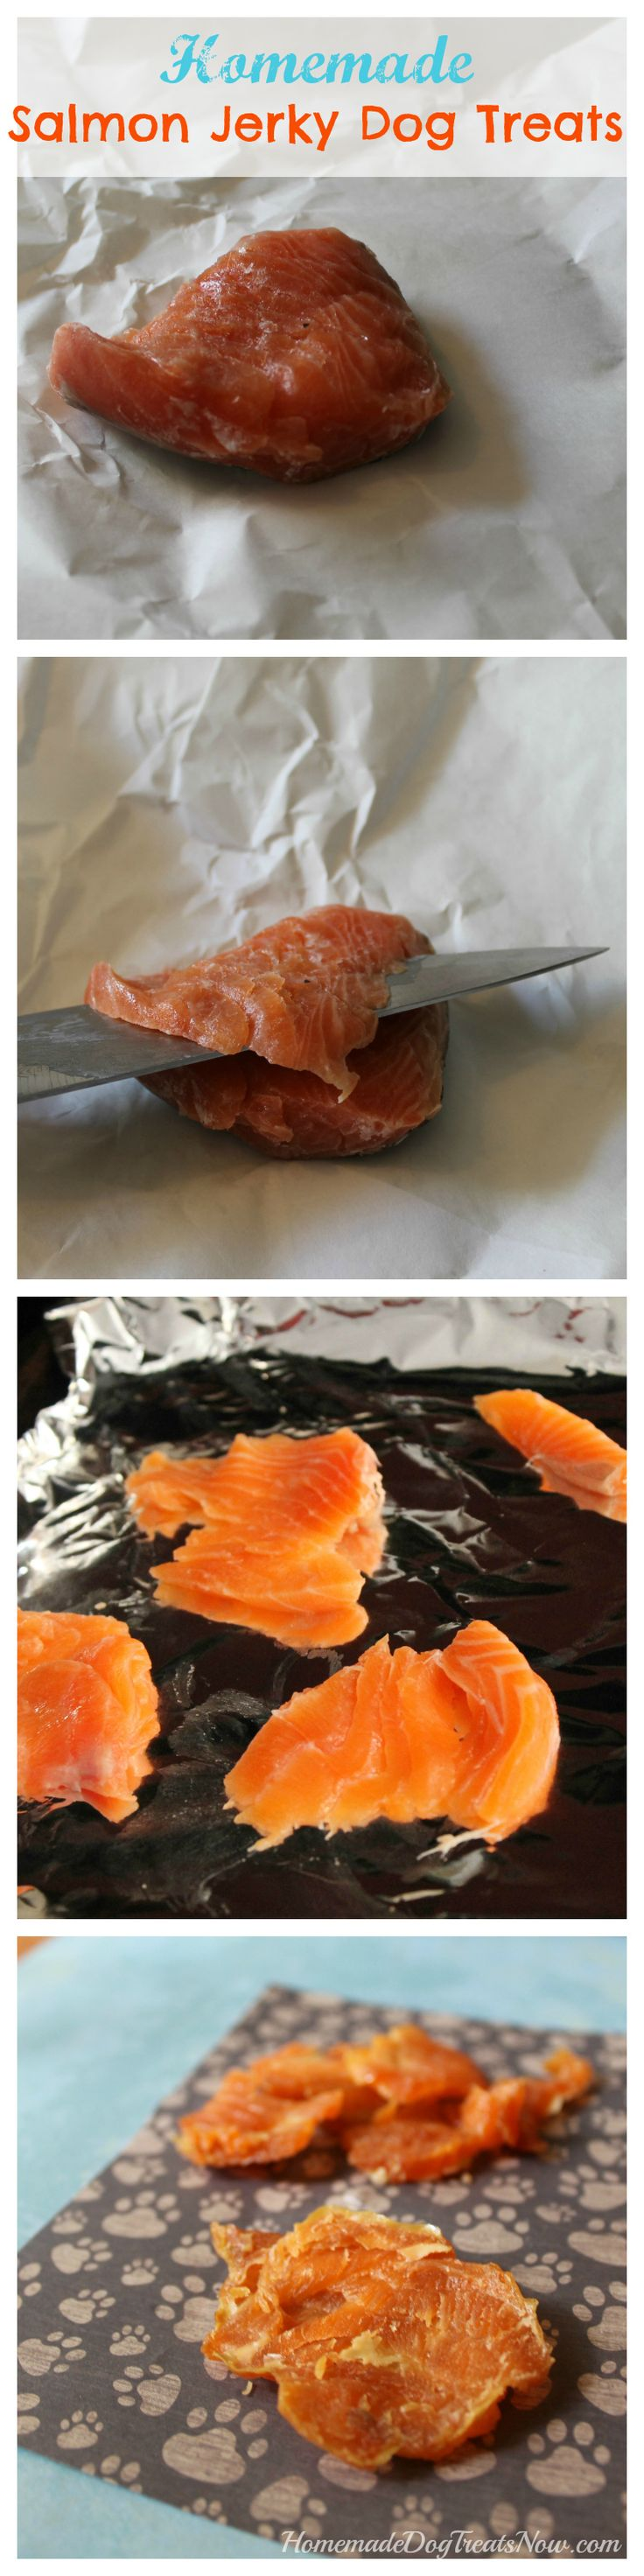 Homemade Salmon Jerky Dog Treats. These are SO easy to make and healthy for your dog! #homemade #diy #dogs